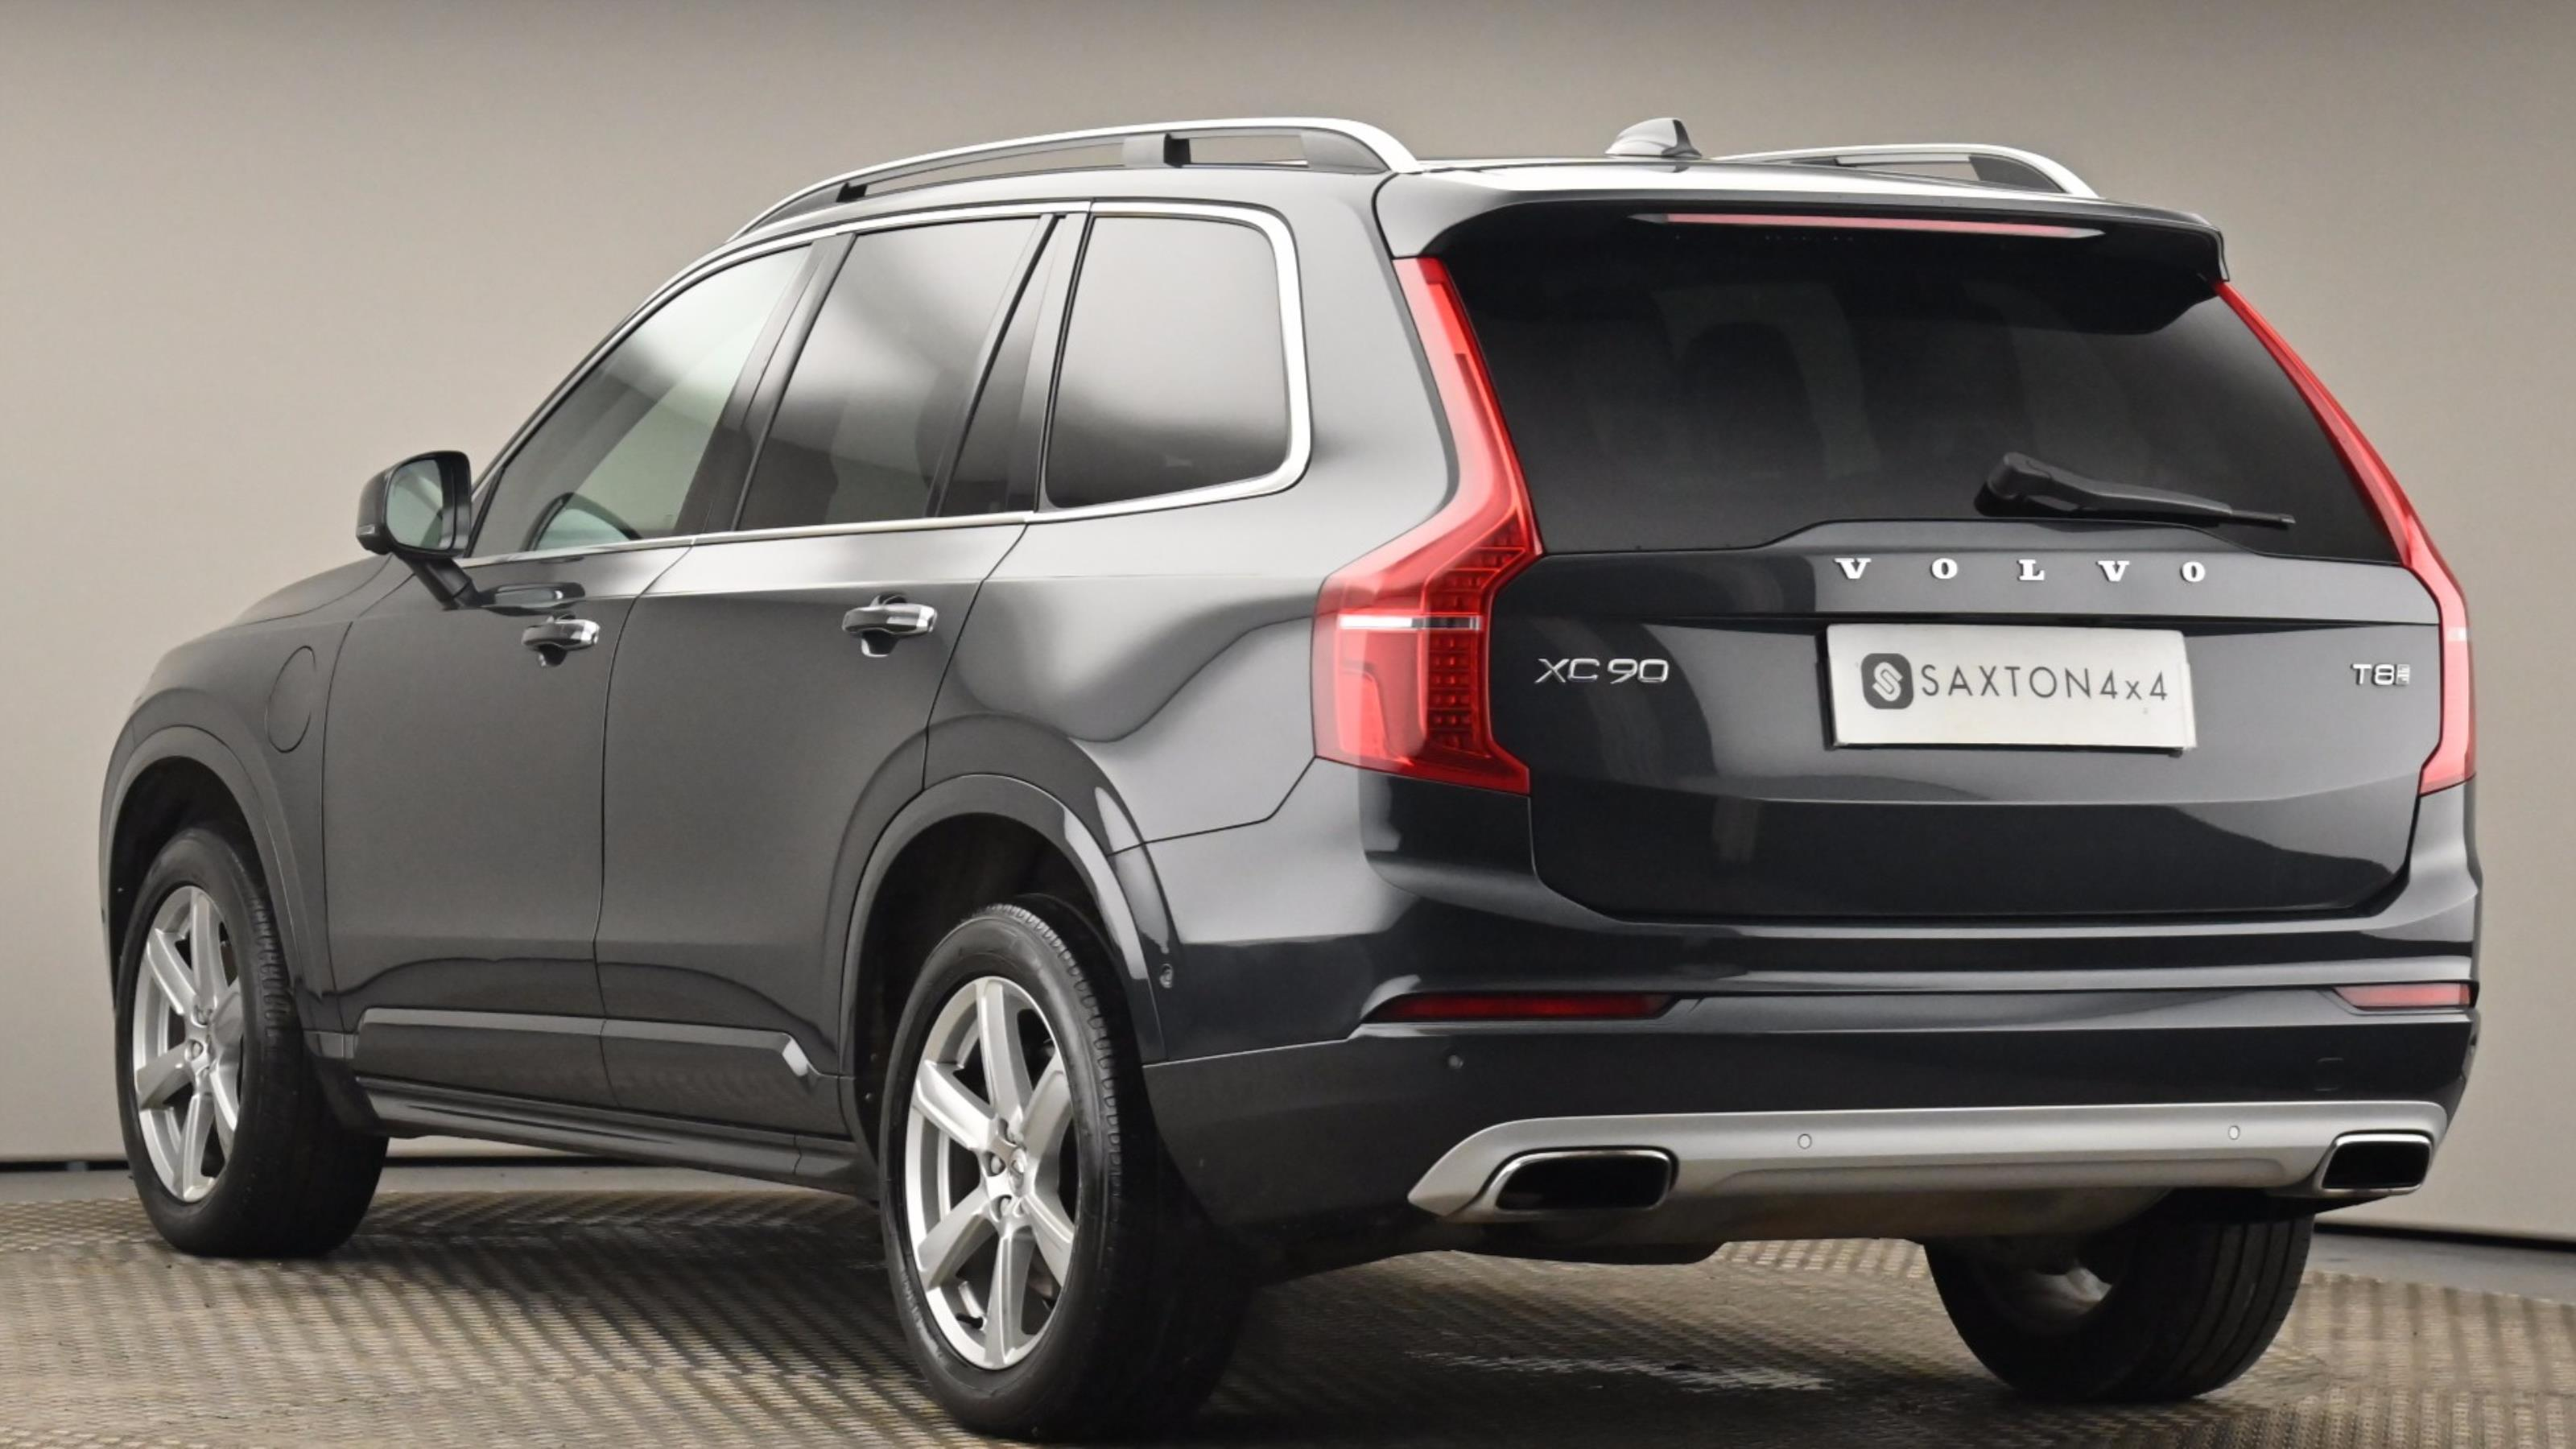 Used 2016 Volvo XC90 2.0 T8 Hybrid Momentum 5dr Geartronic GREY at Saxton4x4